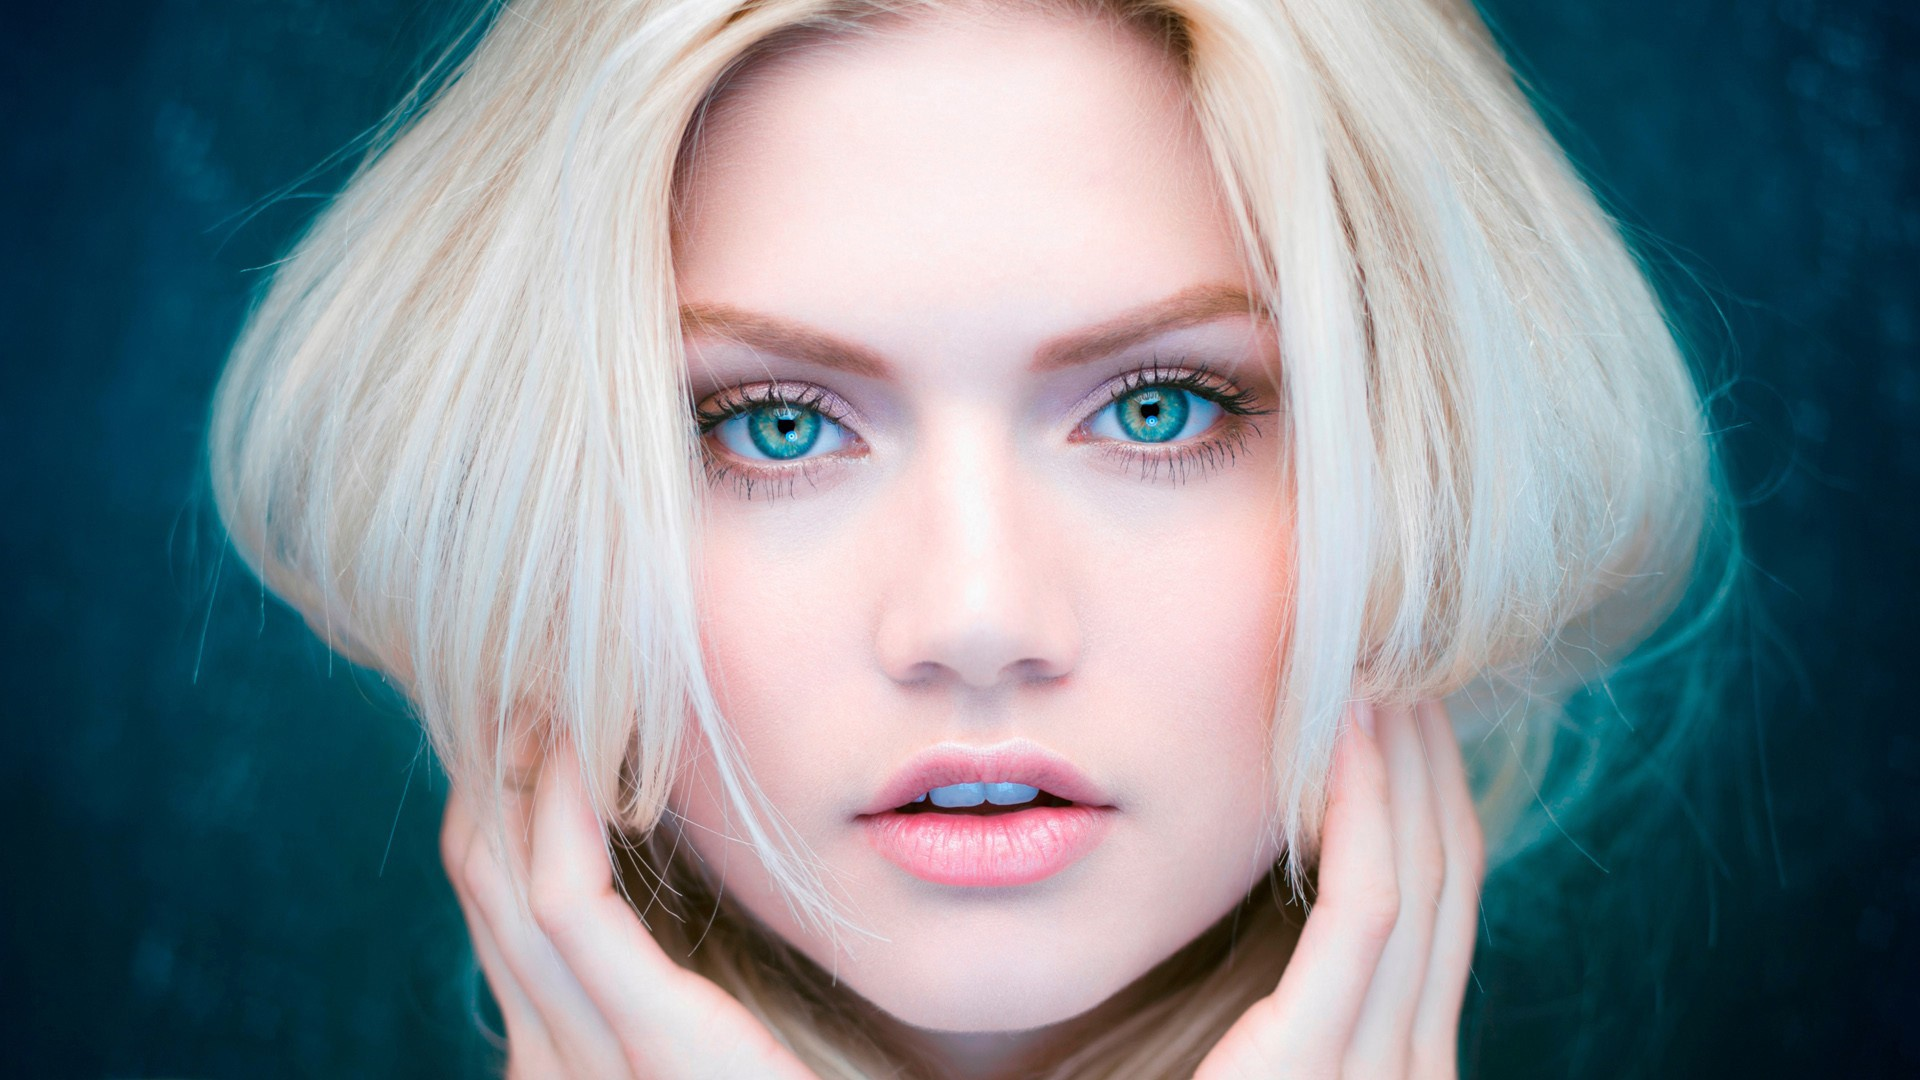 Beautiful Eyes Blonde Girl Hd Girls 4k Wallpapers